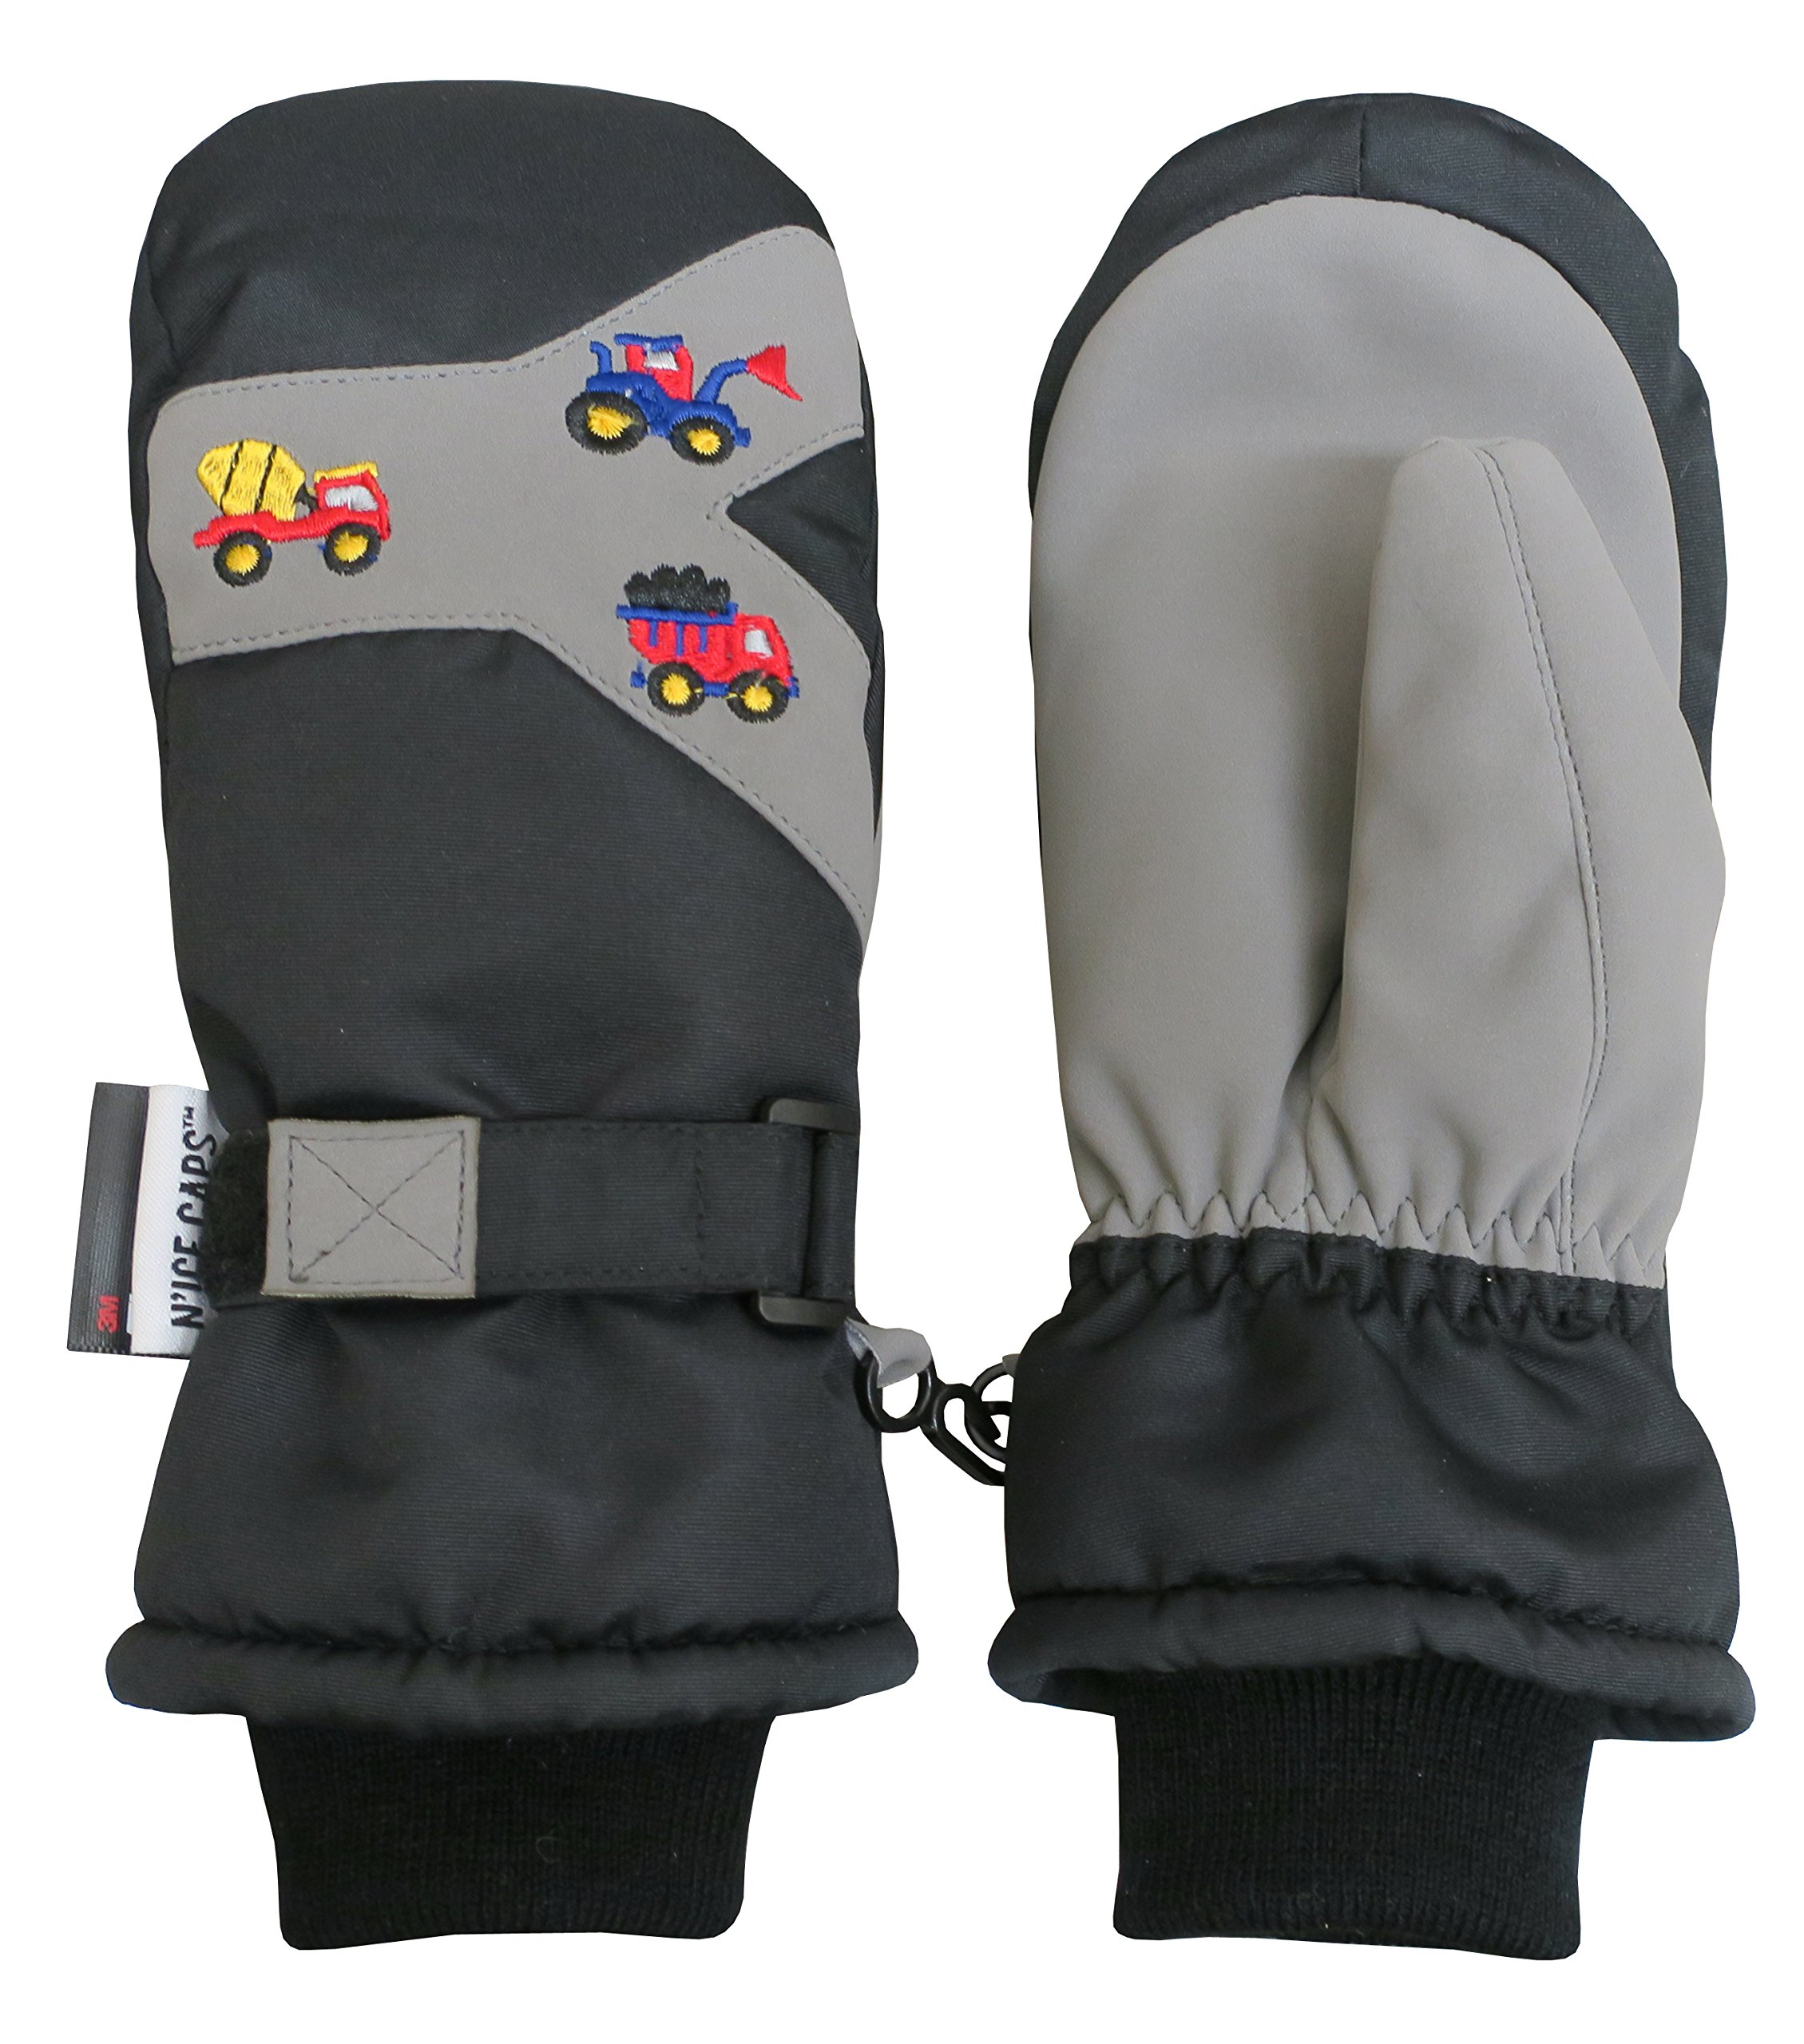 N'Ice Caps Kids and Baby Thinsulate Waterproof Colorblock Ski Snow Mittens (2-3yrs, Black/Grey Trucks Embroidery)